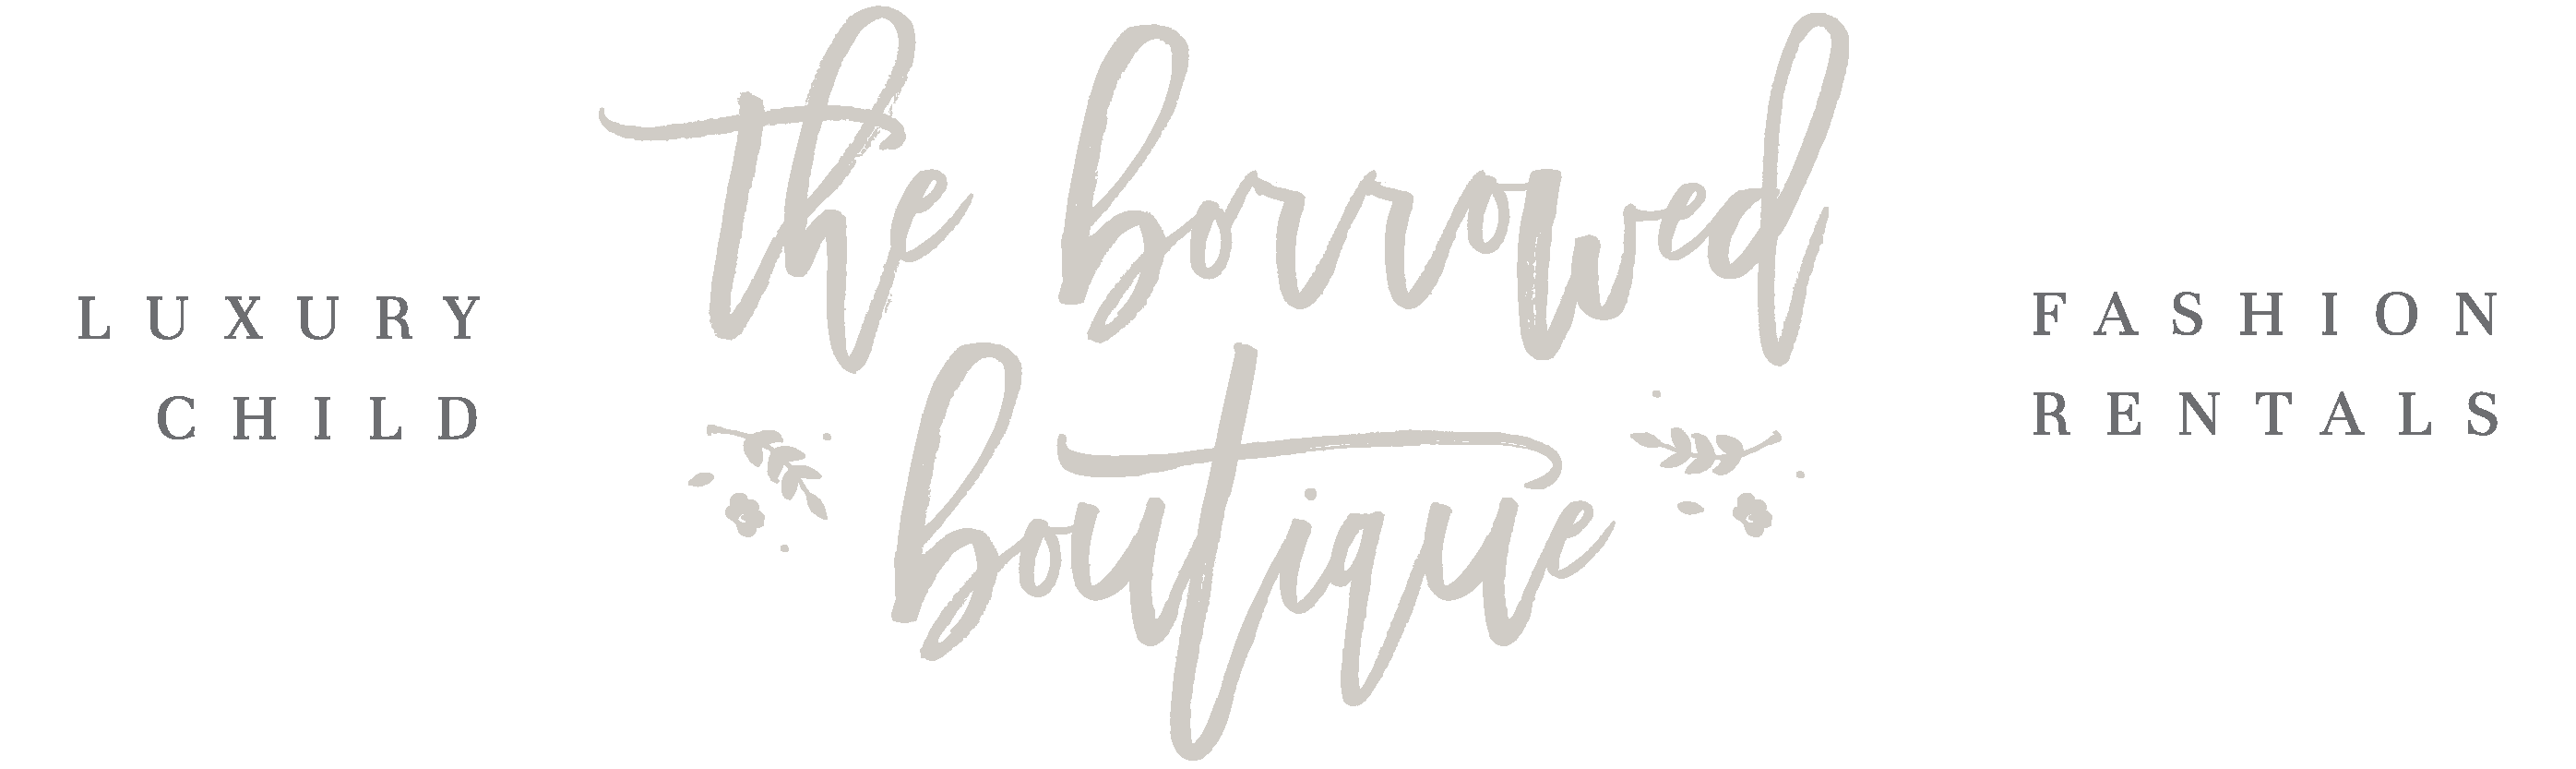 The Borrowed Boutique